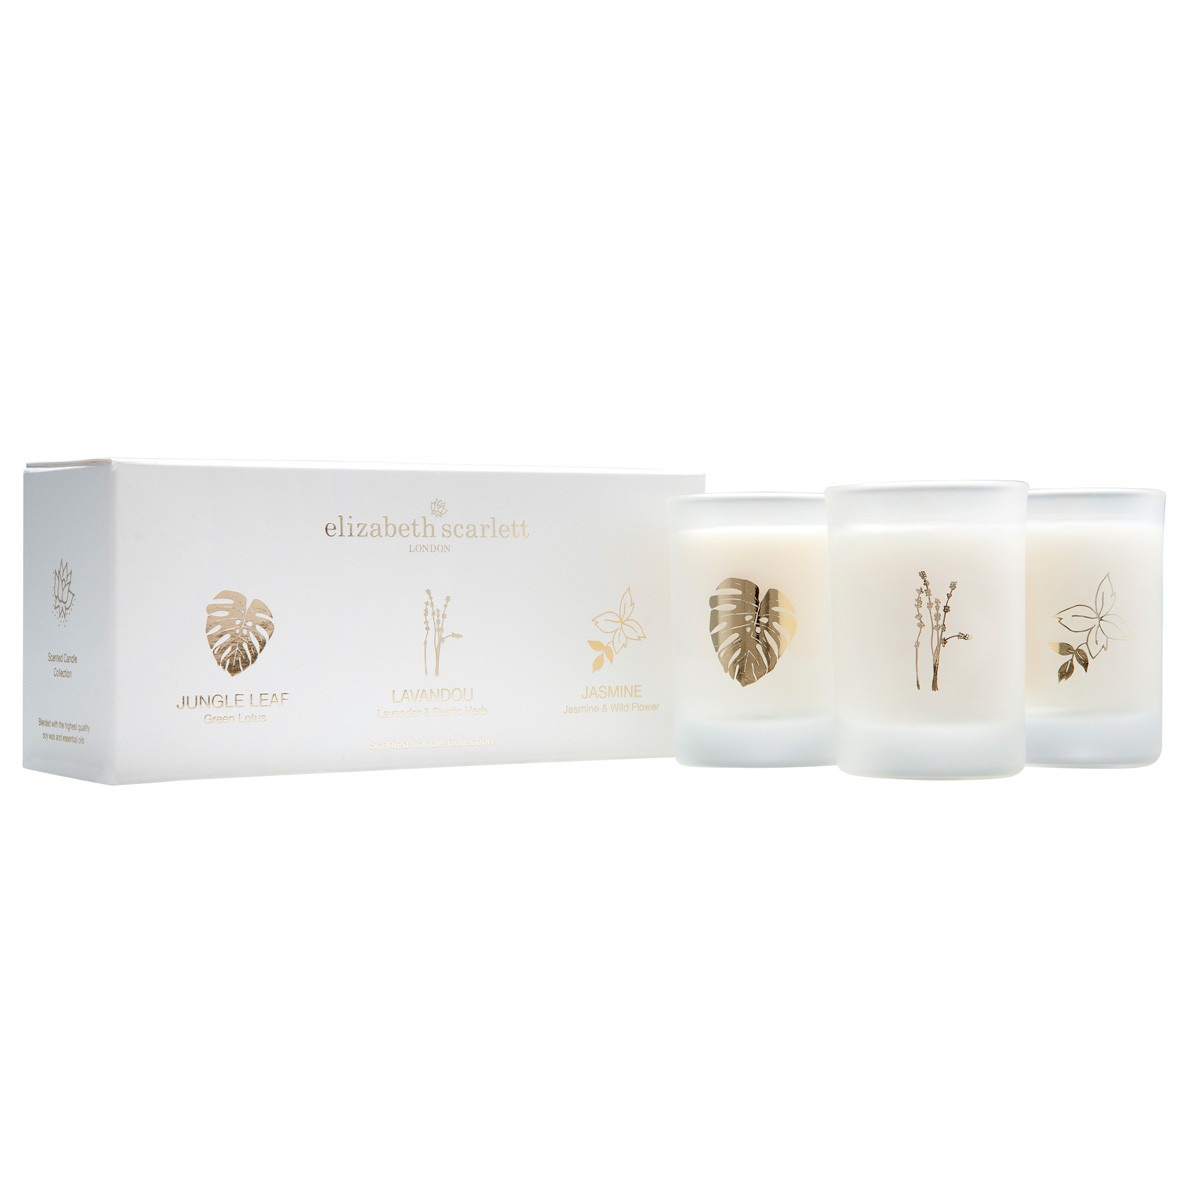 elizabeth-scarlett-3-natural-candles-gift-set-